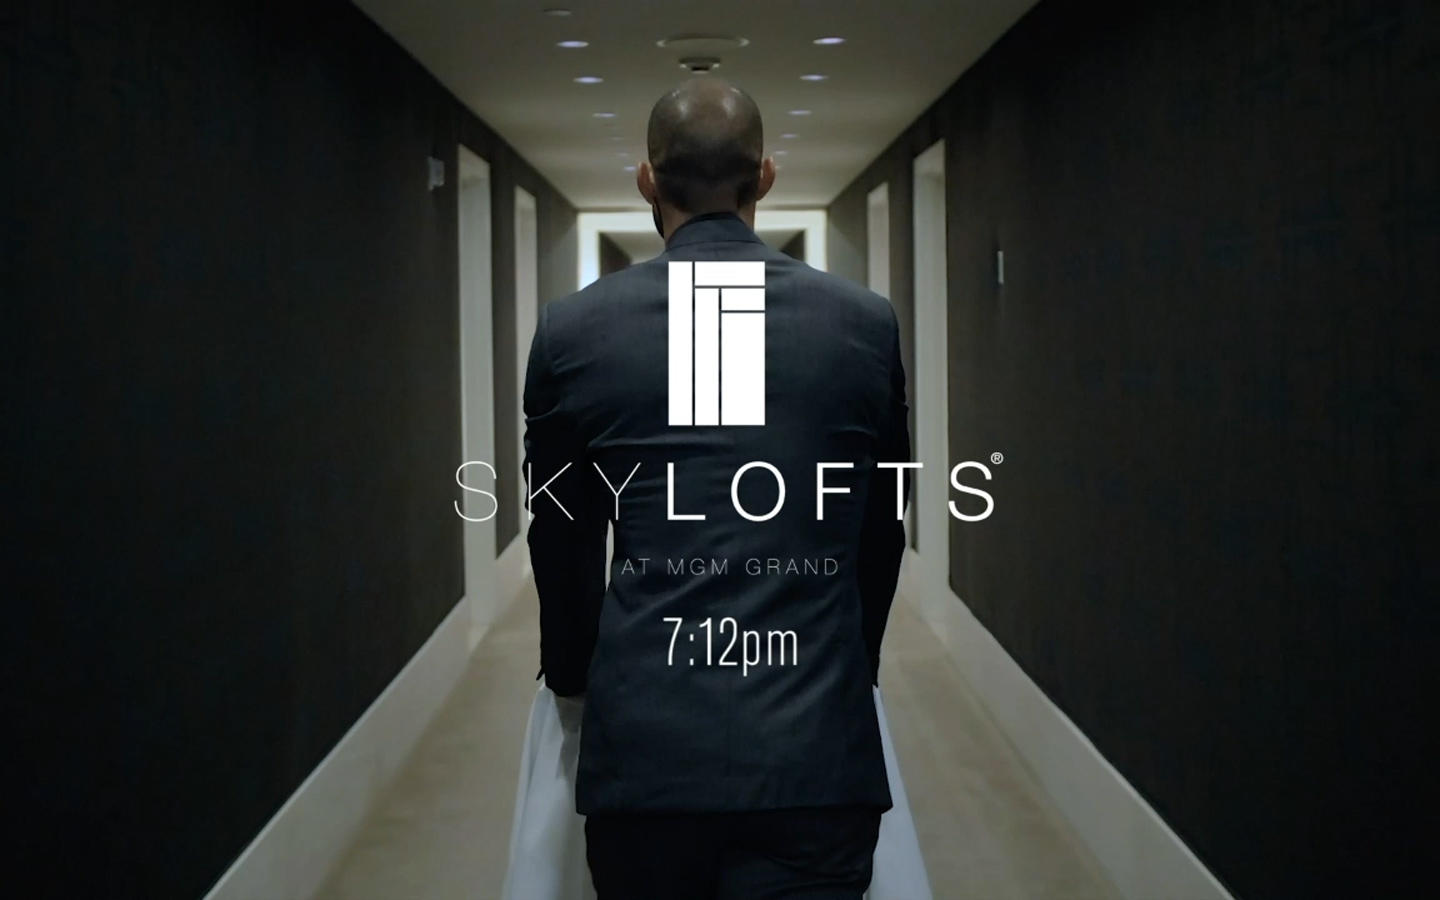 Experience Skylofts at MGM Grand Las Vegas.